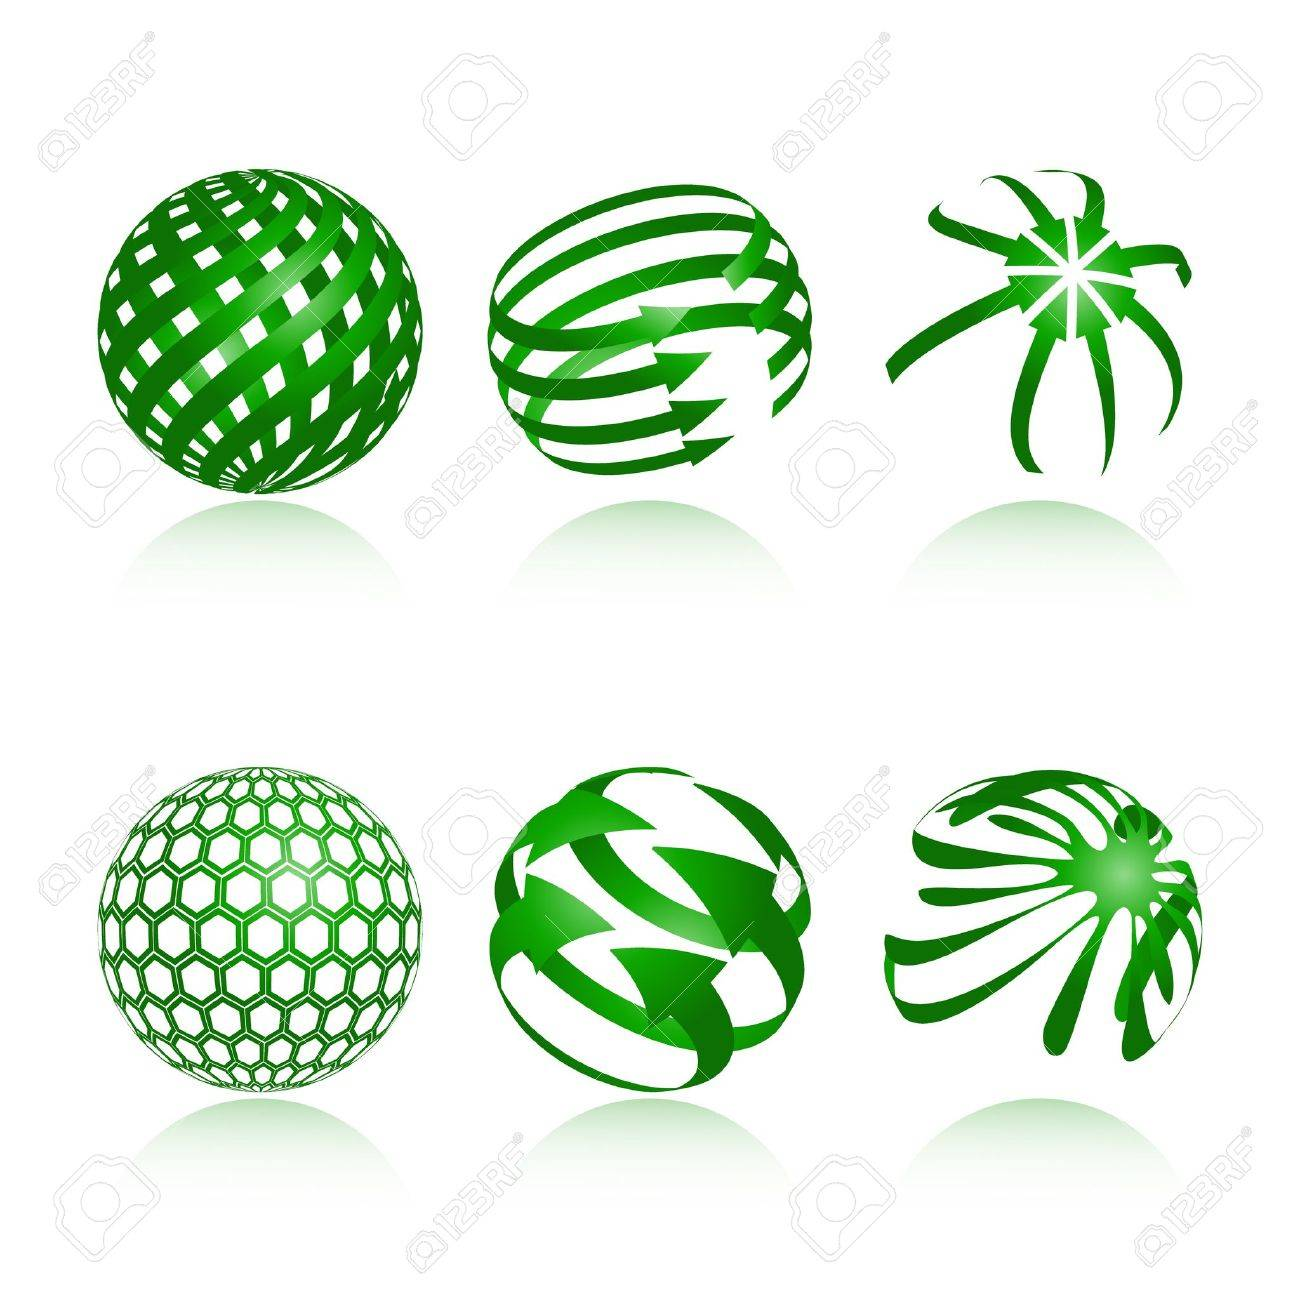 collection of abstract green globe icons and symbols Stock Vector - 11383471